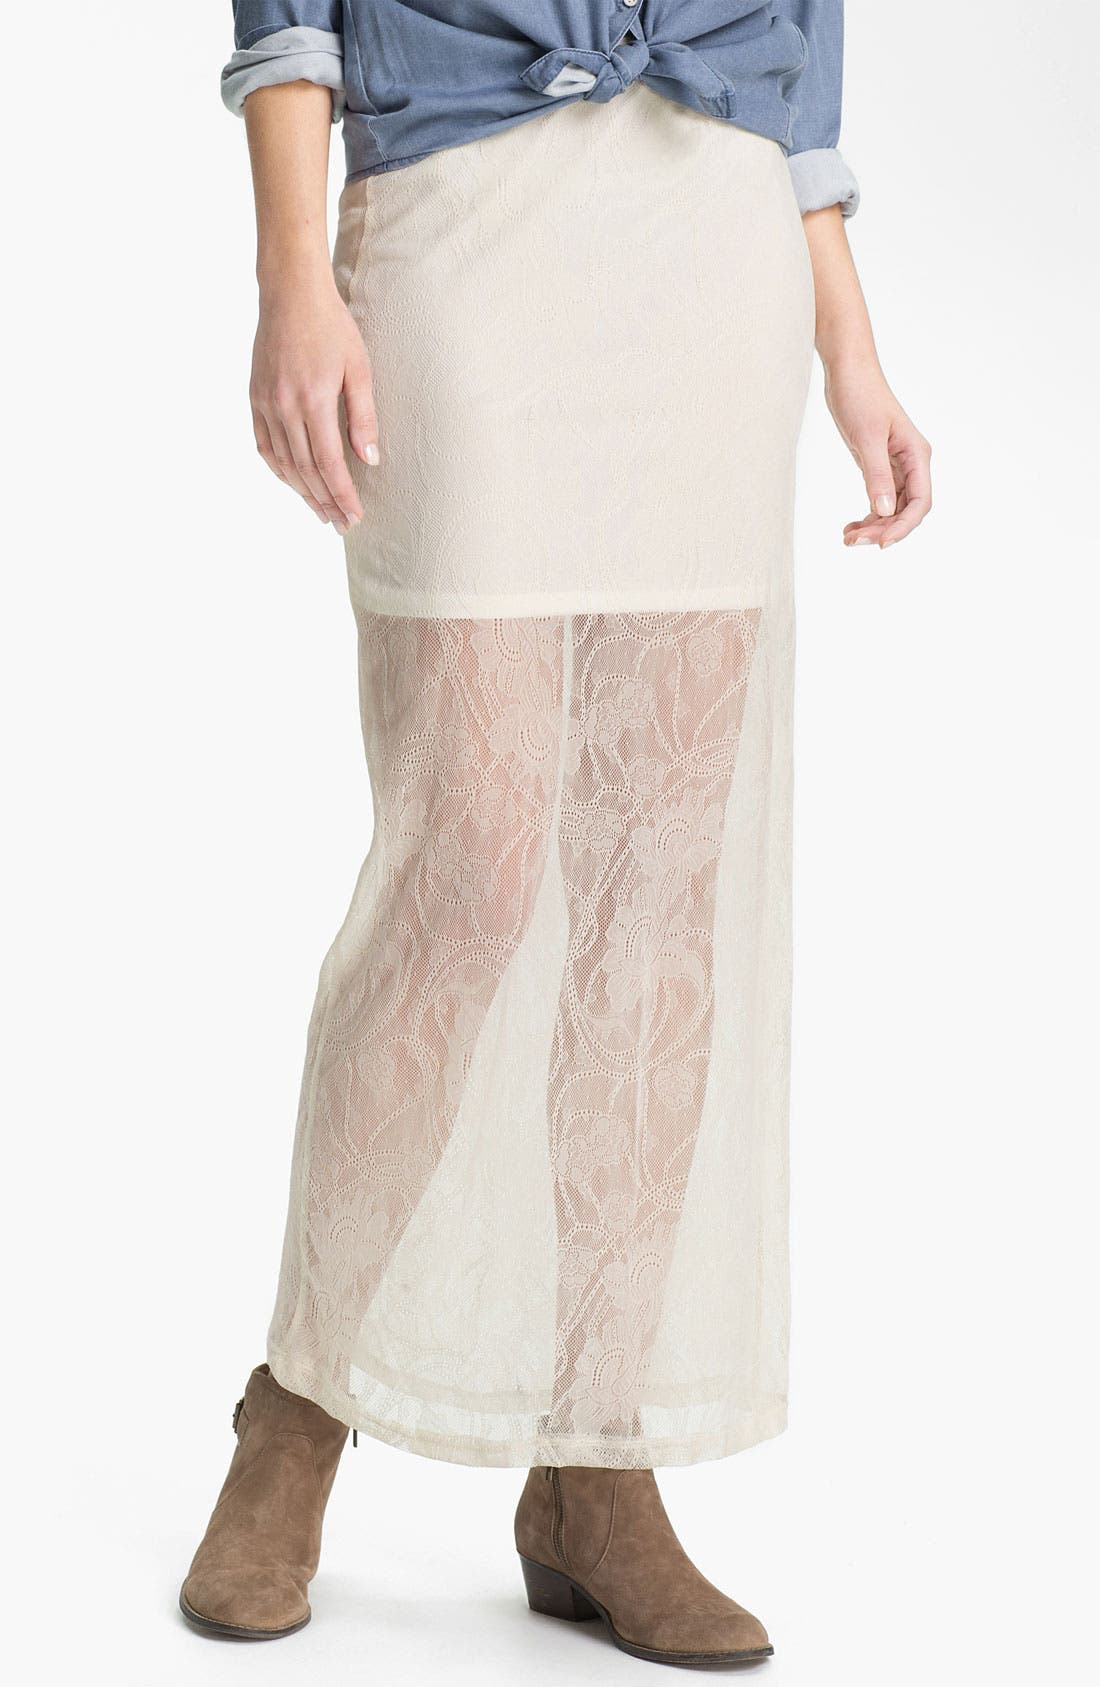 Alternate Image 1 Selected - h.i.p. Half Sheer Lace Maxi Skirt (Juniors)